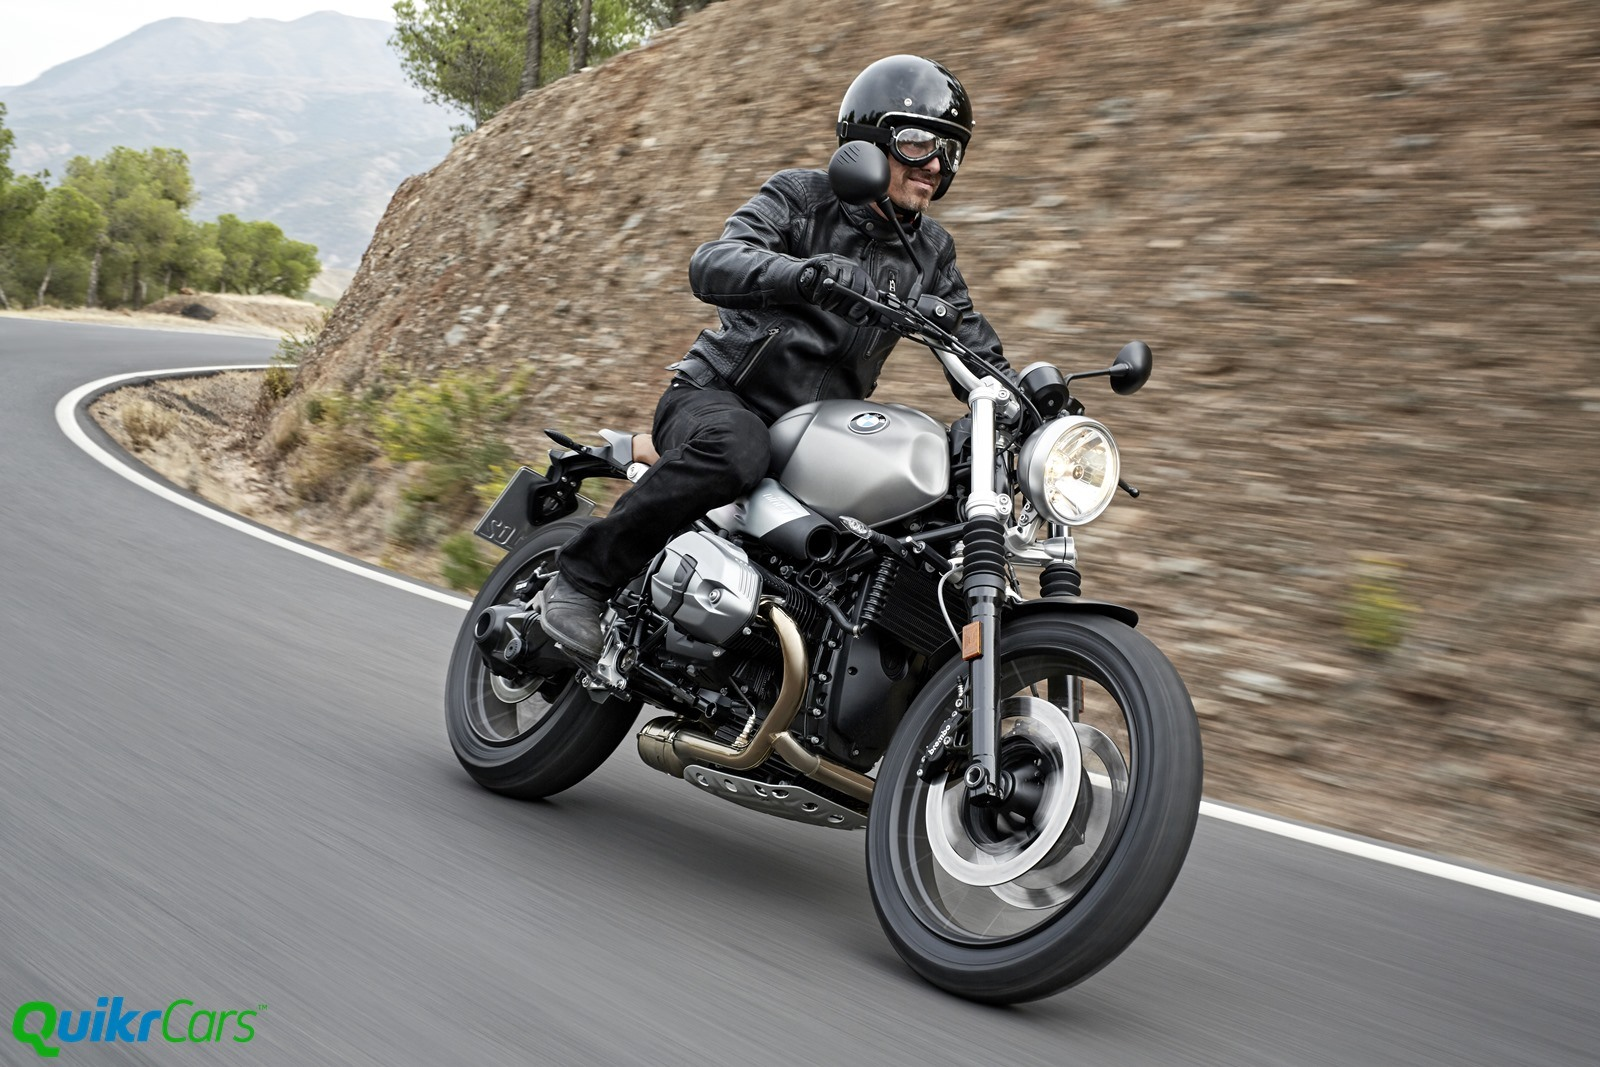 2016 BMW R nineT Scrambler officially unveiled at EICMA